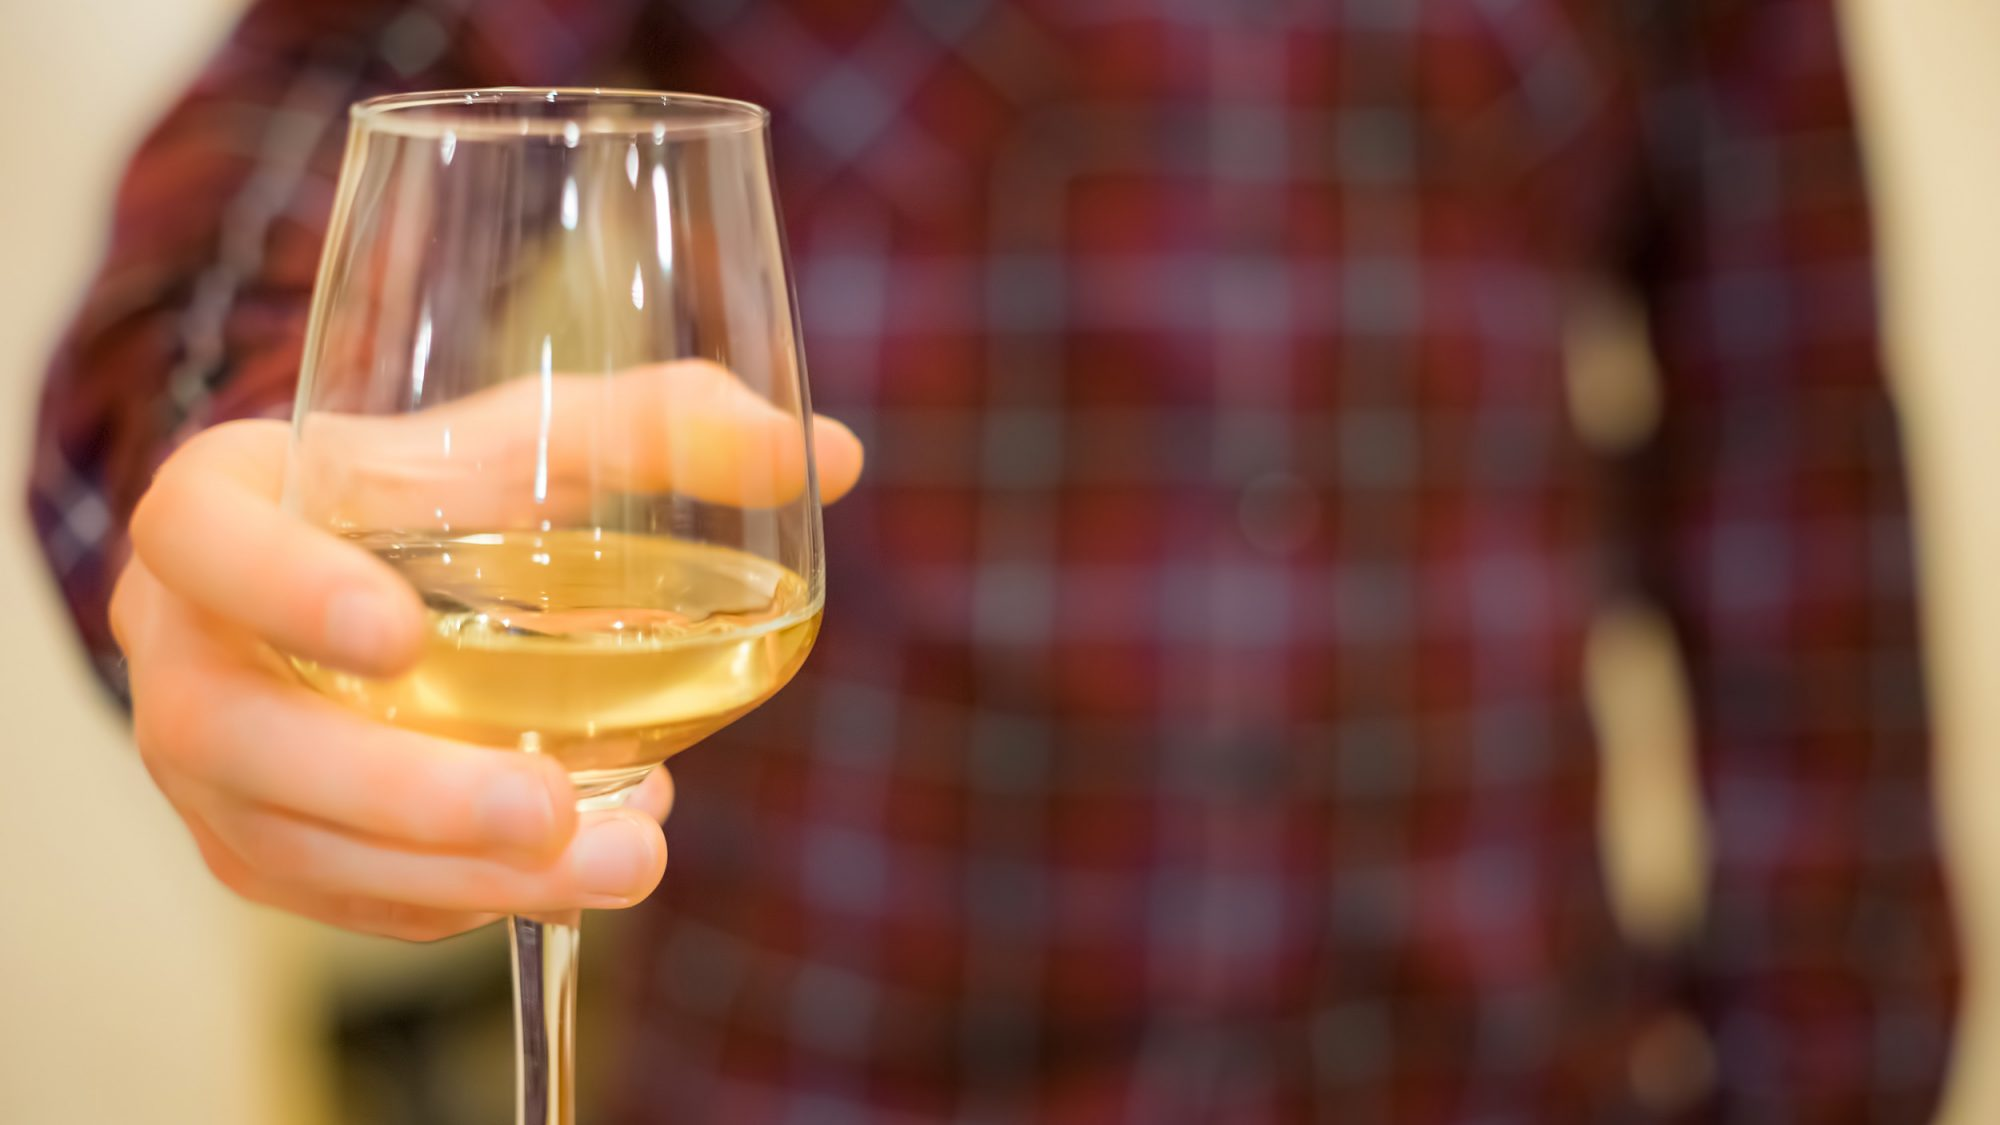 How to Hold a Wine Glass